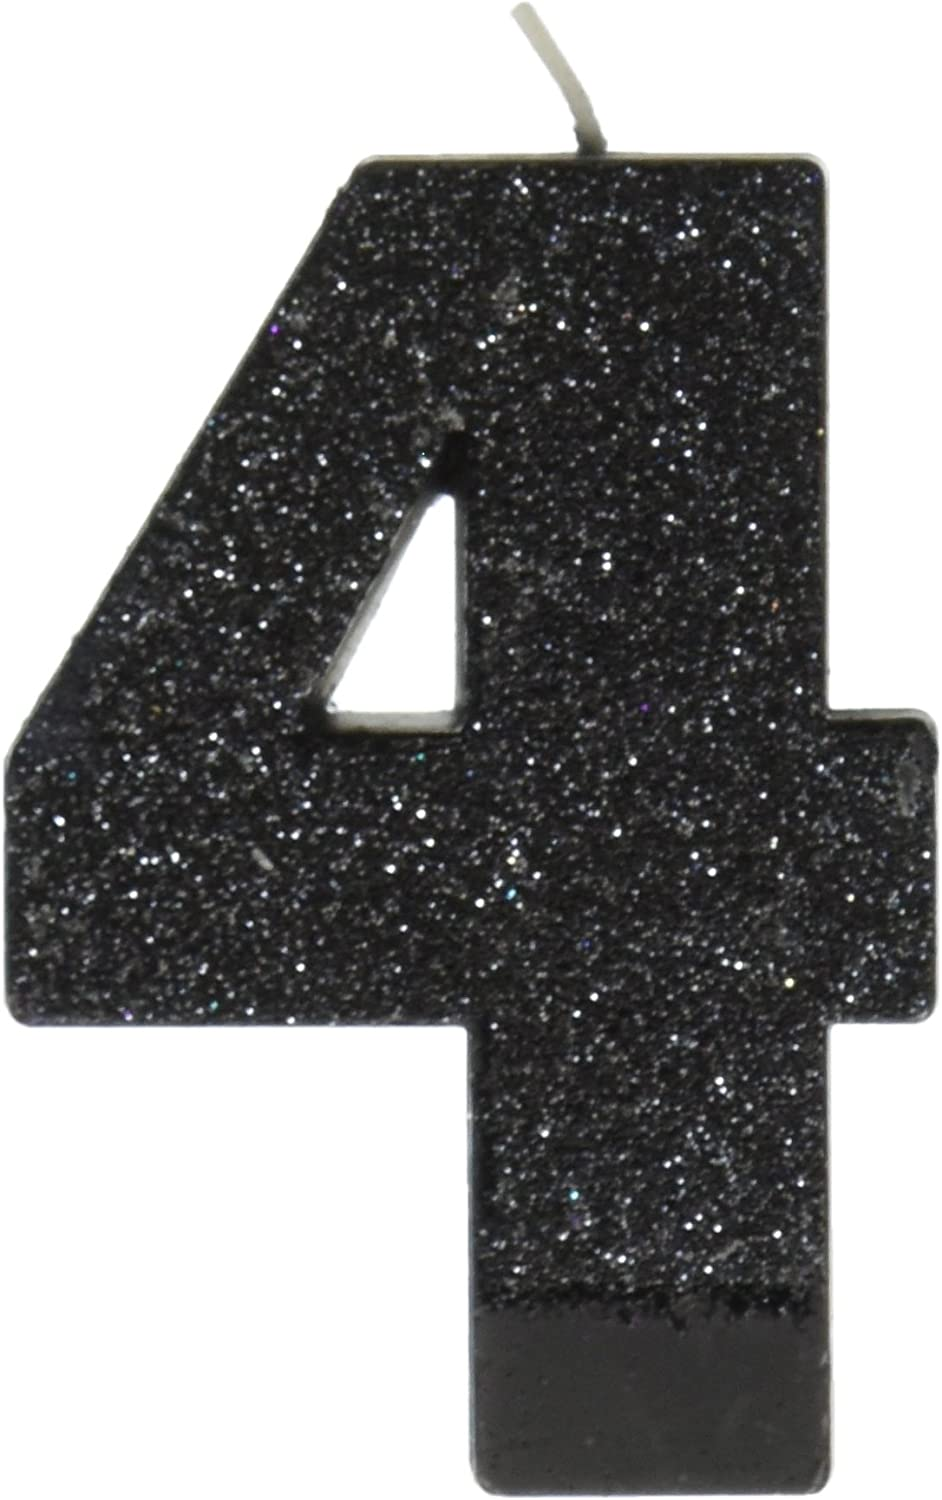 amscan Birthday Celebration, Numeral #4 Glitter Candle, Party Supplies, Black, 3 1/4